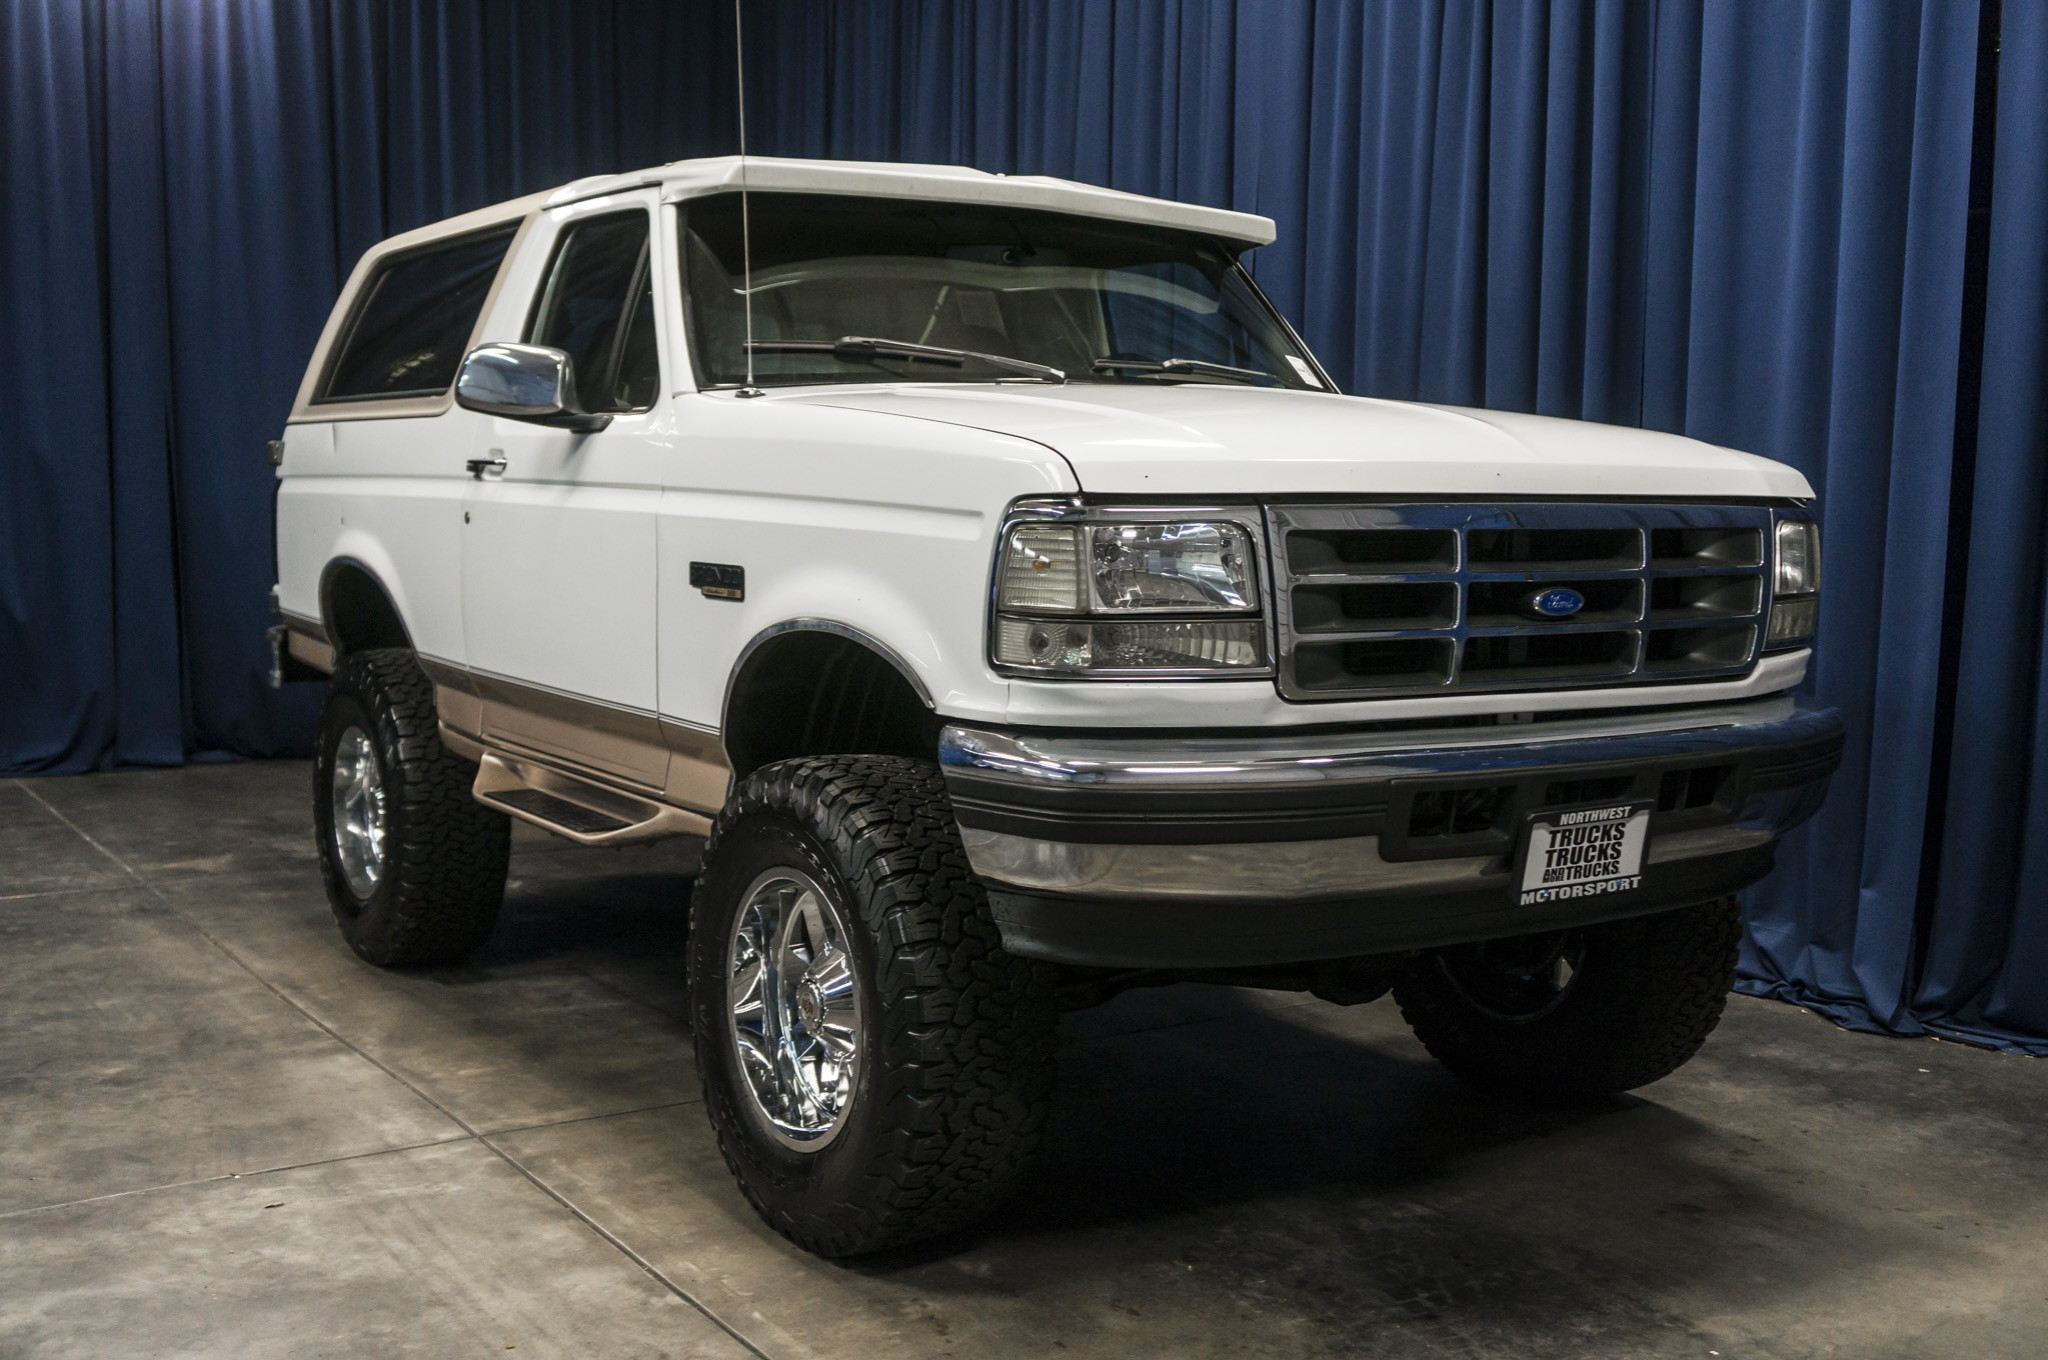 used lifted 1996 ford bronco eddie bauer 4x4 suv for sale 35454b. Black Bedroom Furniture Sets. Home Design Ideas